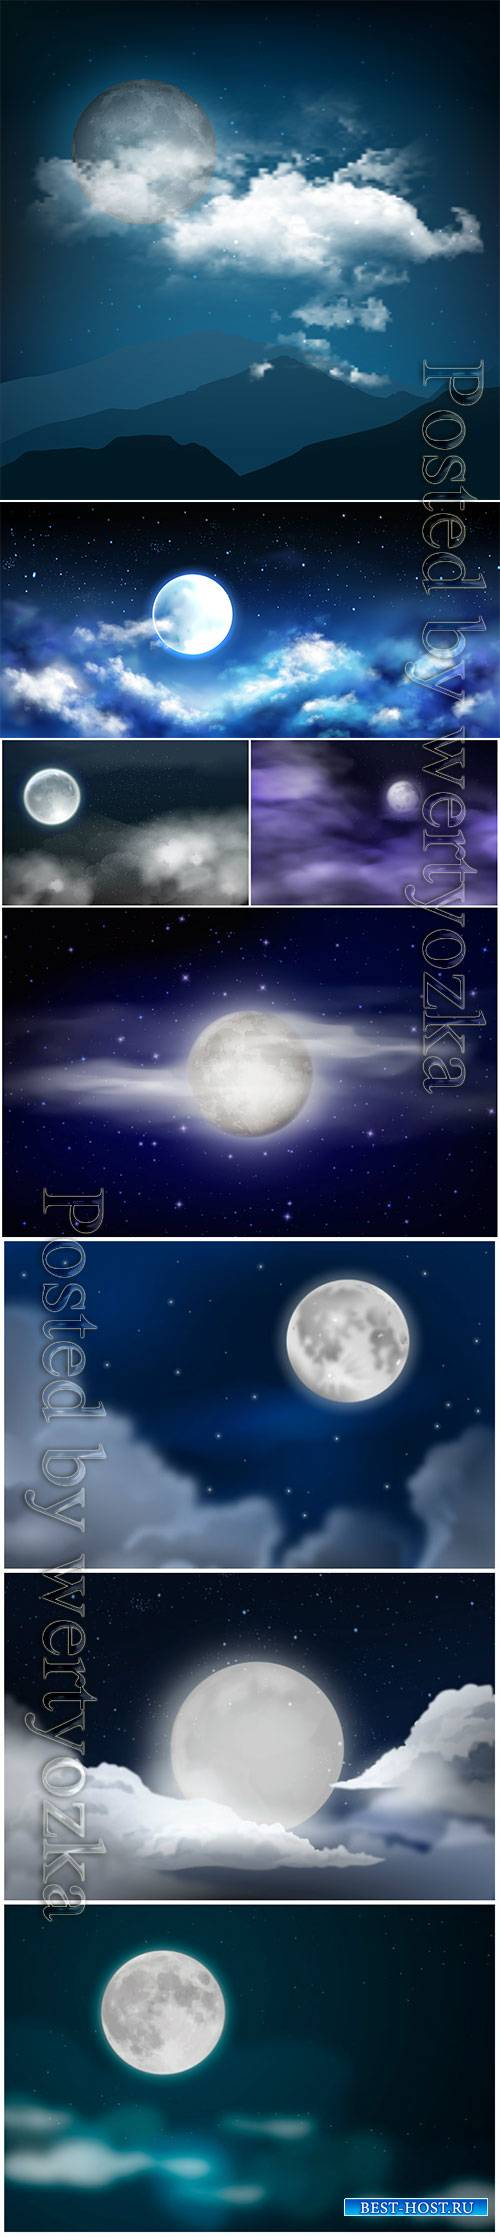 Moon, night sky, stars and clouds vector illustration